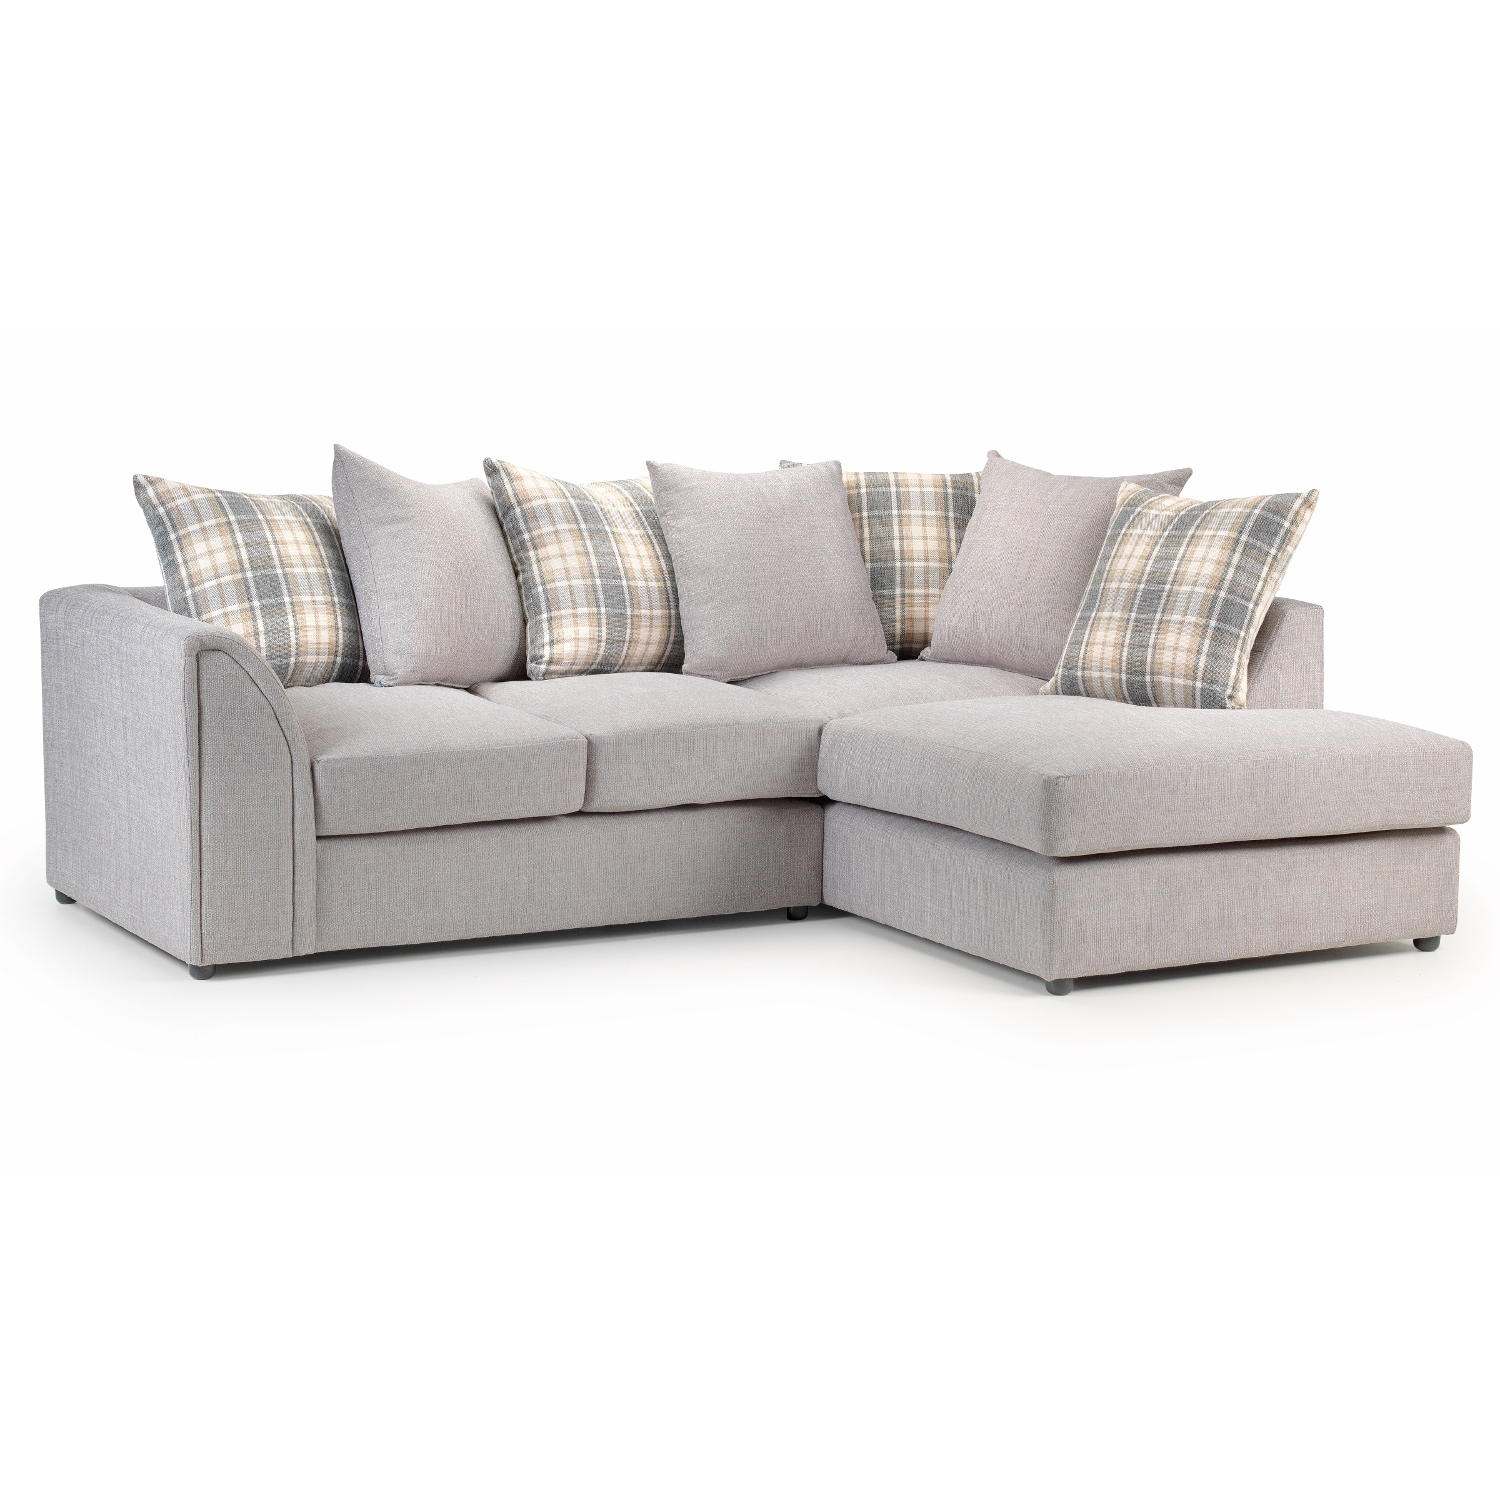 Awesome Corner Sofas , New Corner Sofas 60 About Remodel Office Sofa for Fabric Corner Sofas (Image 1 of 10)